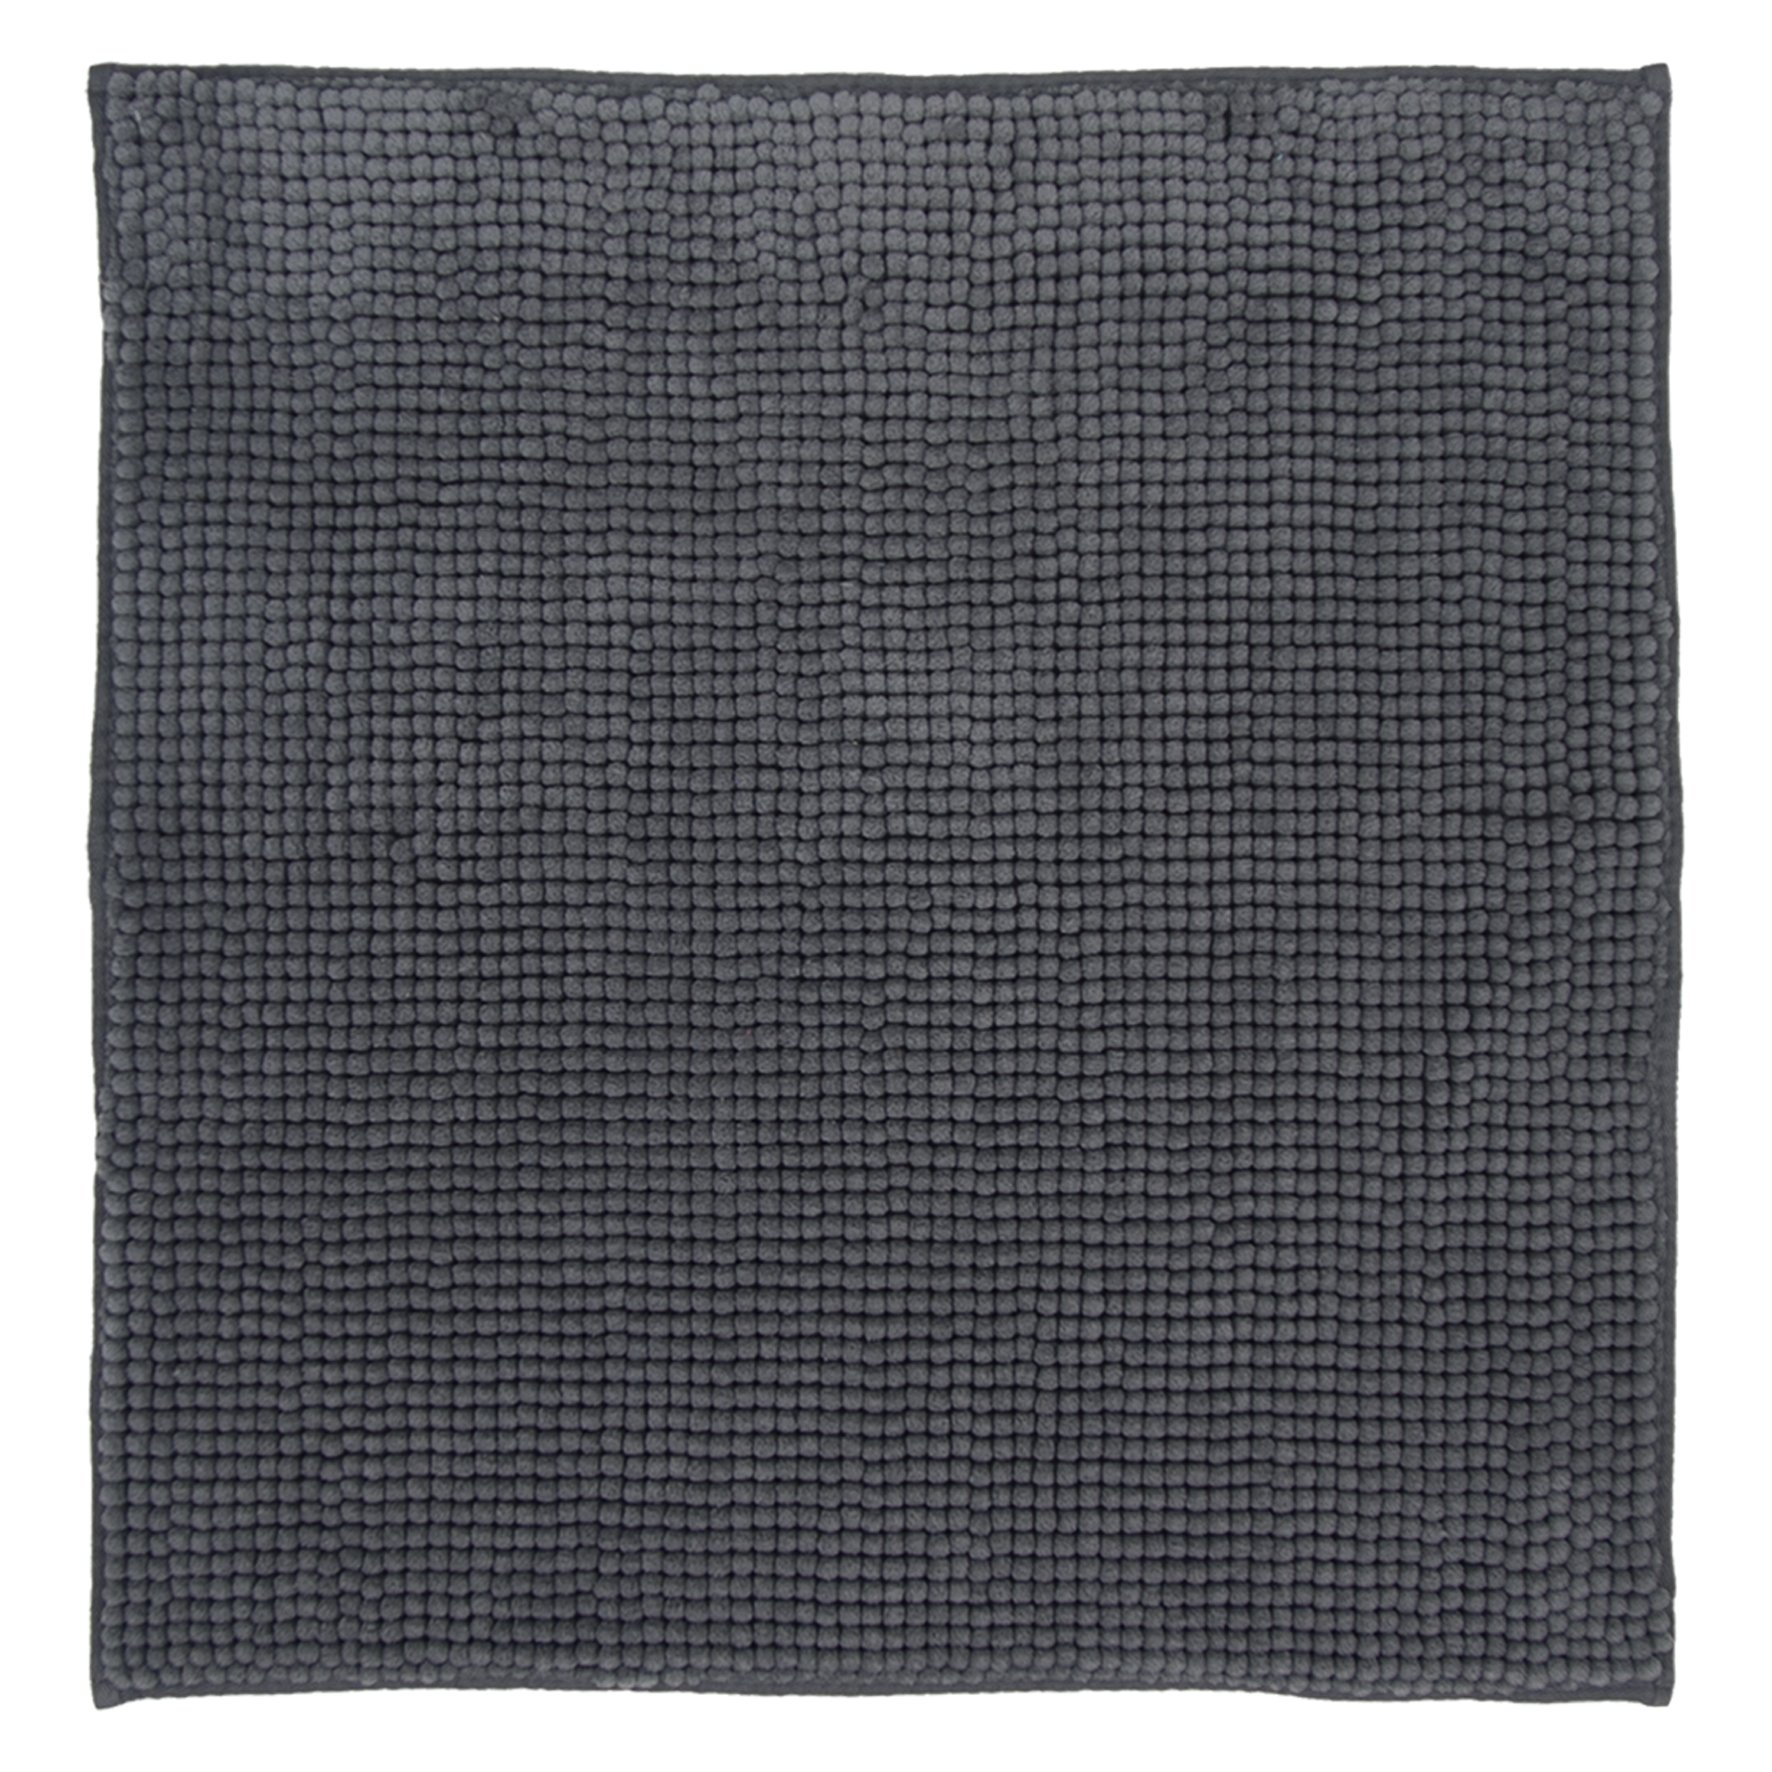 DIFFERNZ 31.220.04 Candore Bath Mat, Charcoal by Differnz